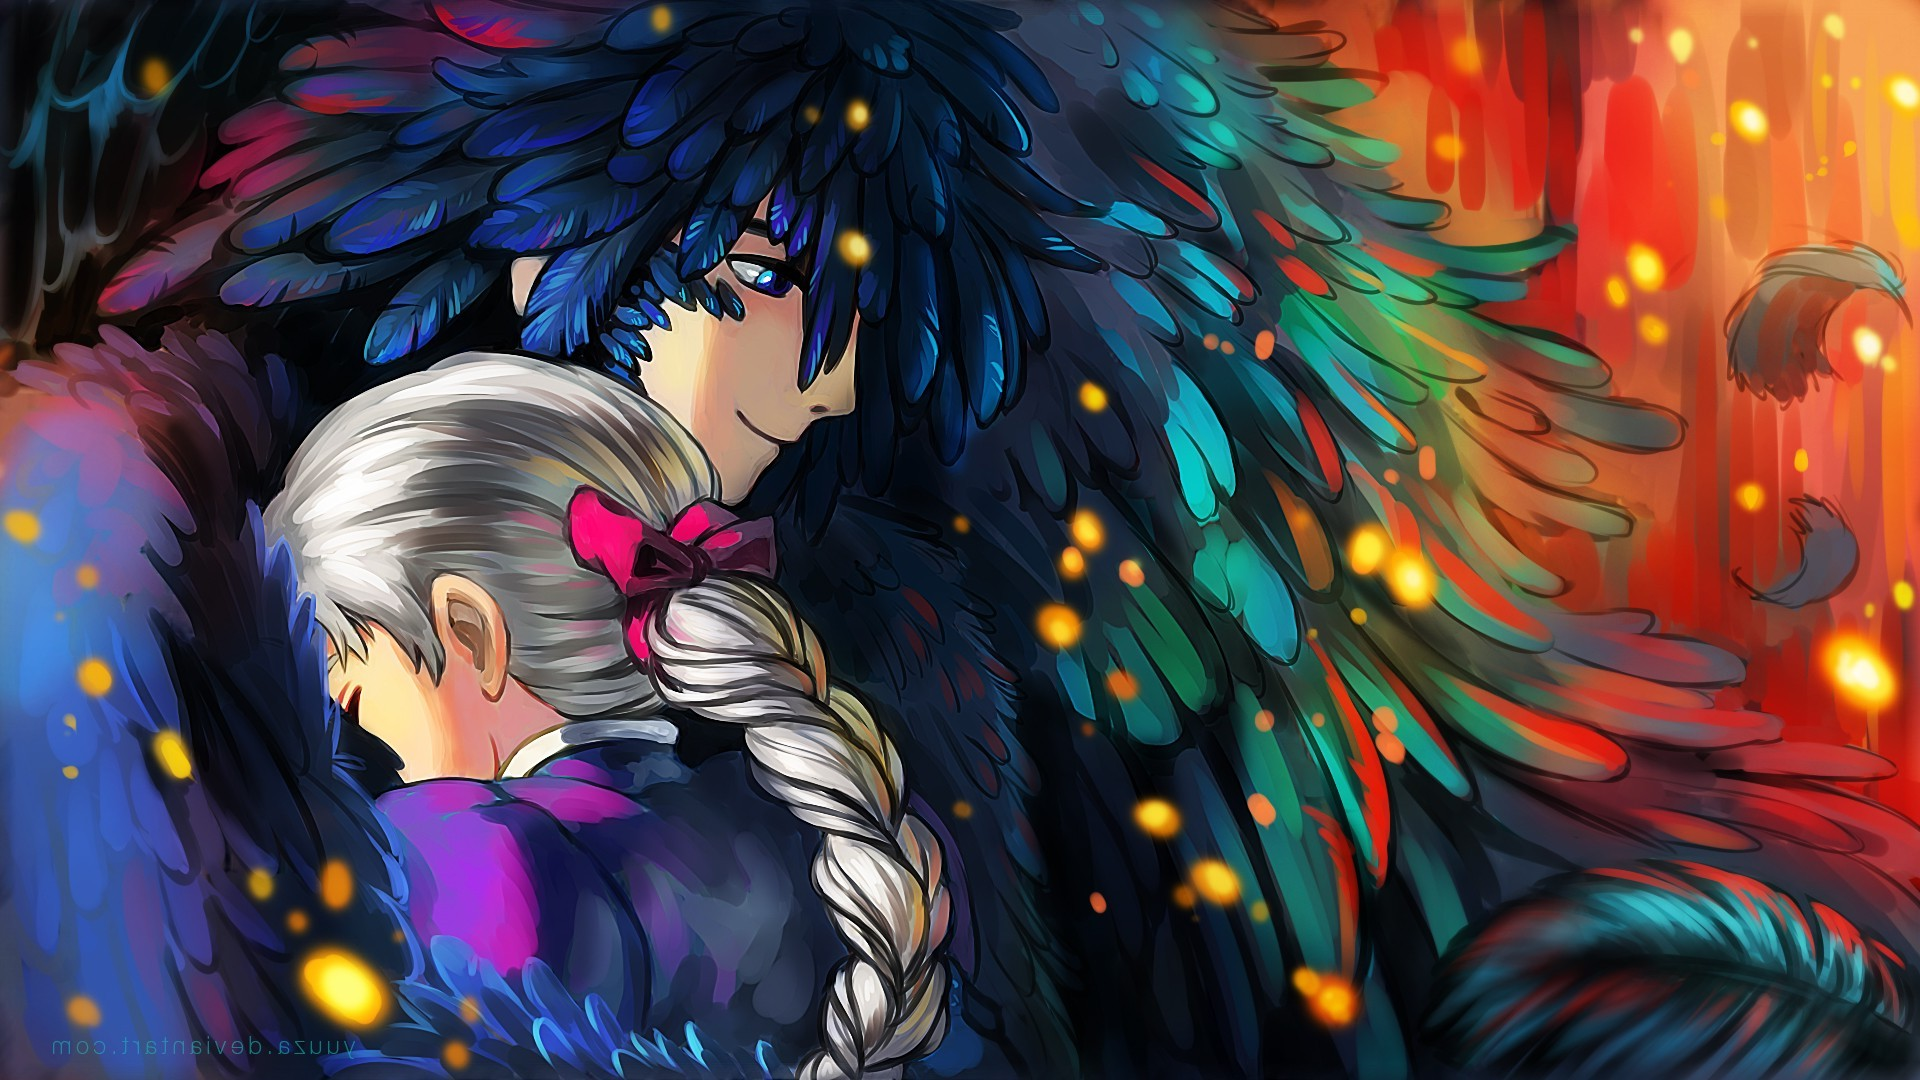 Studio Ghibli Howls Moving Castle Anime Wallpaper And Howls